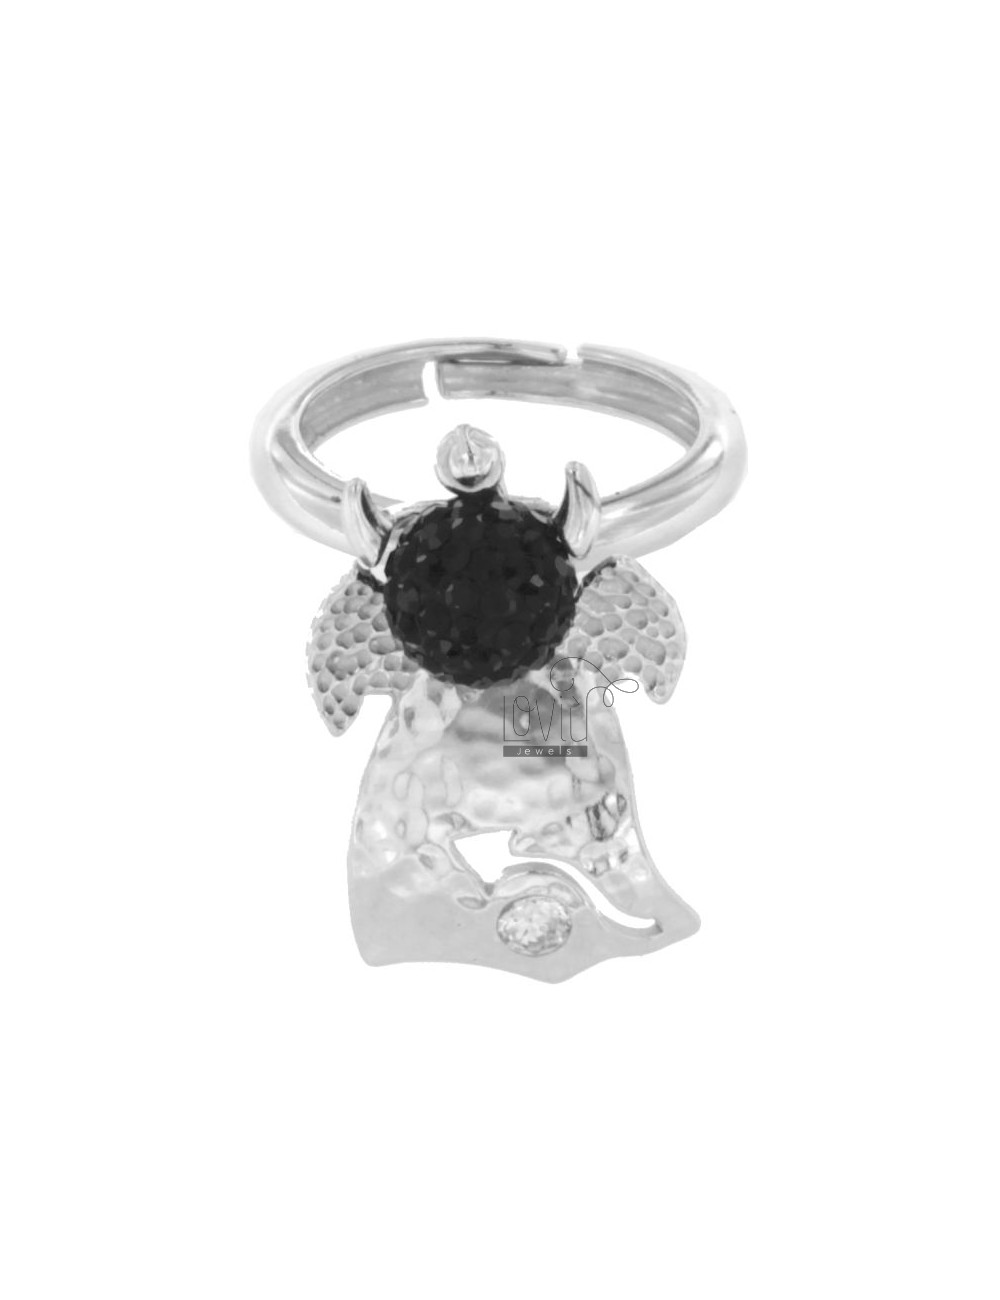 RING RHODIUM TIT QUEEN AG 925 ‰ CRYSTAL RESIN AND BLACKS AND BALL SIZE ADJUSTABLE